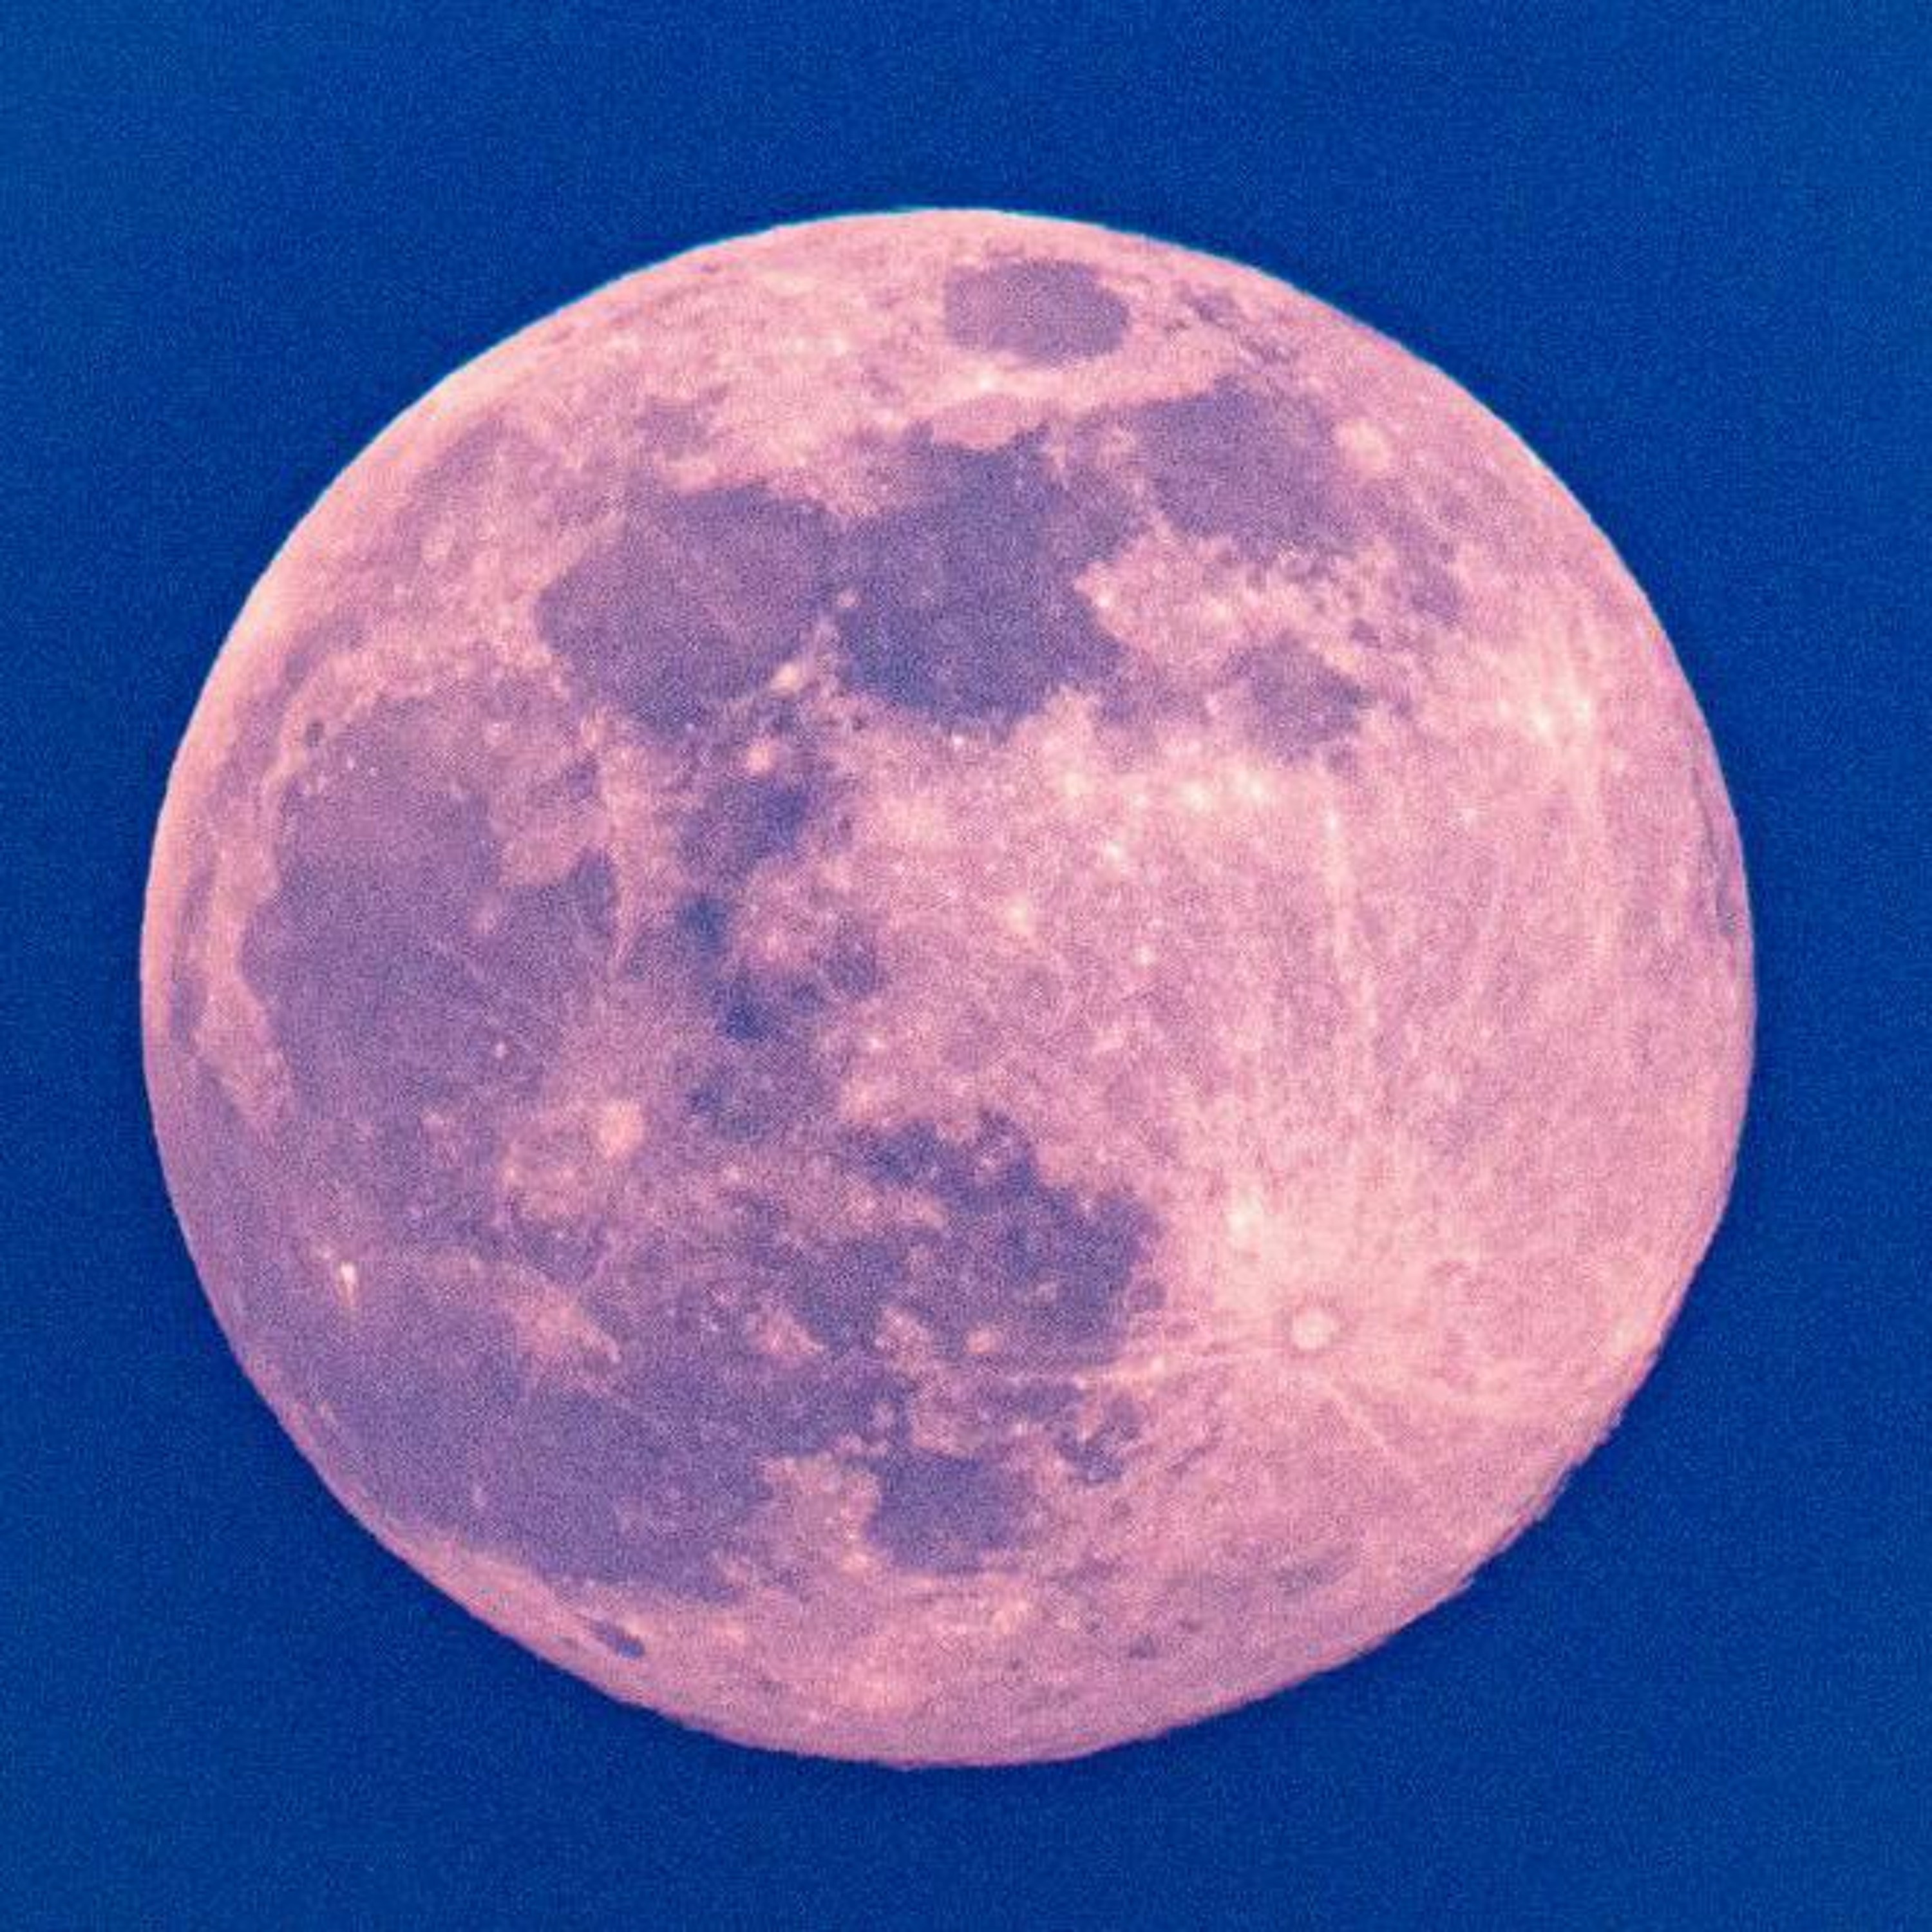 6/21/21 - The Rose Moon